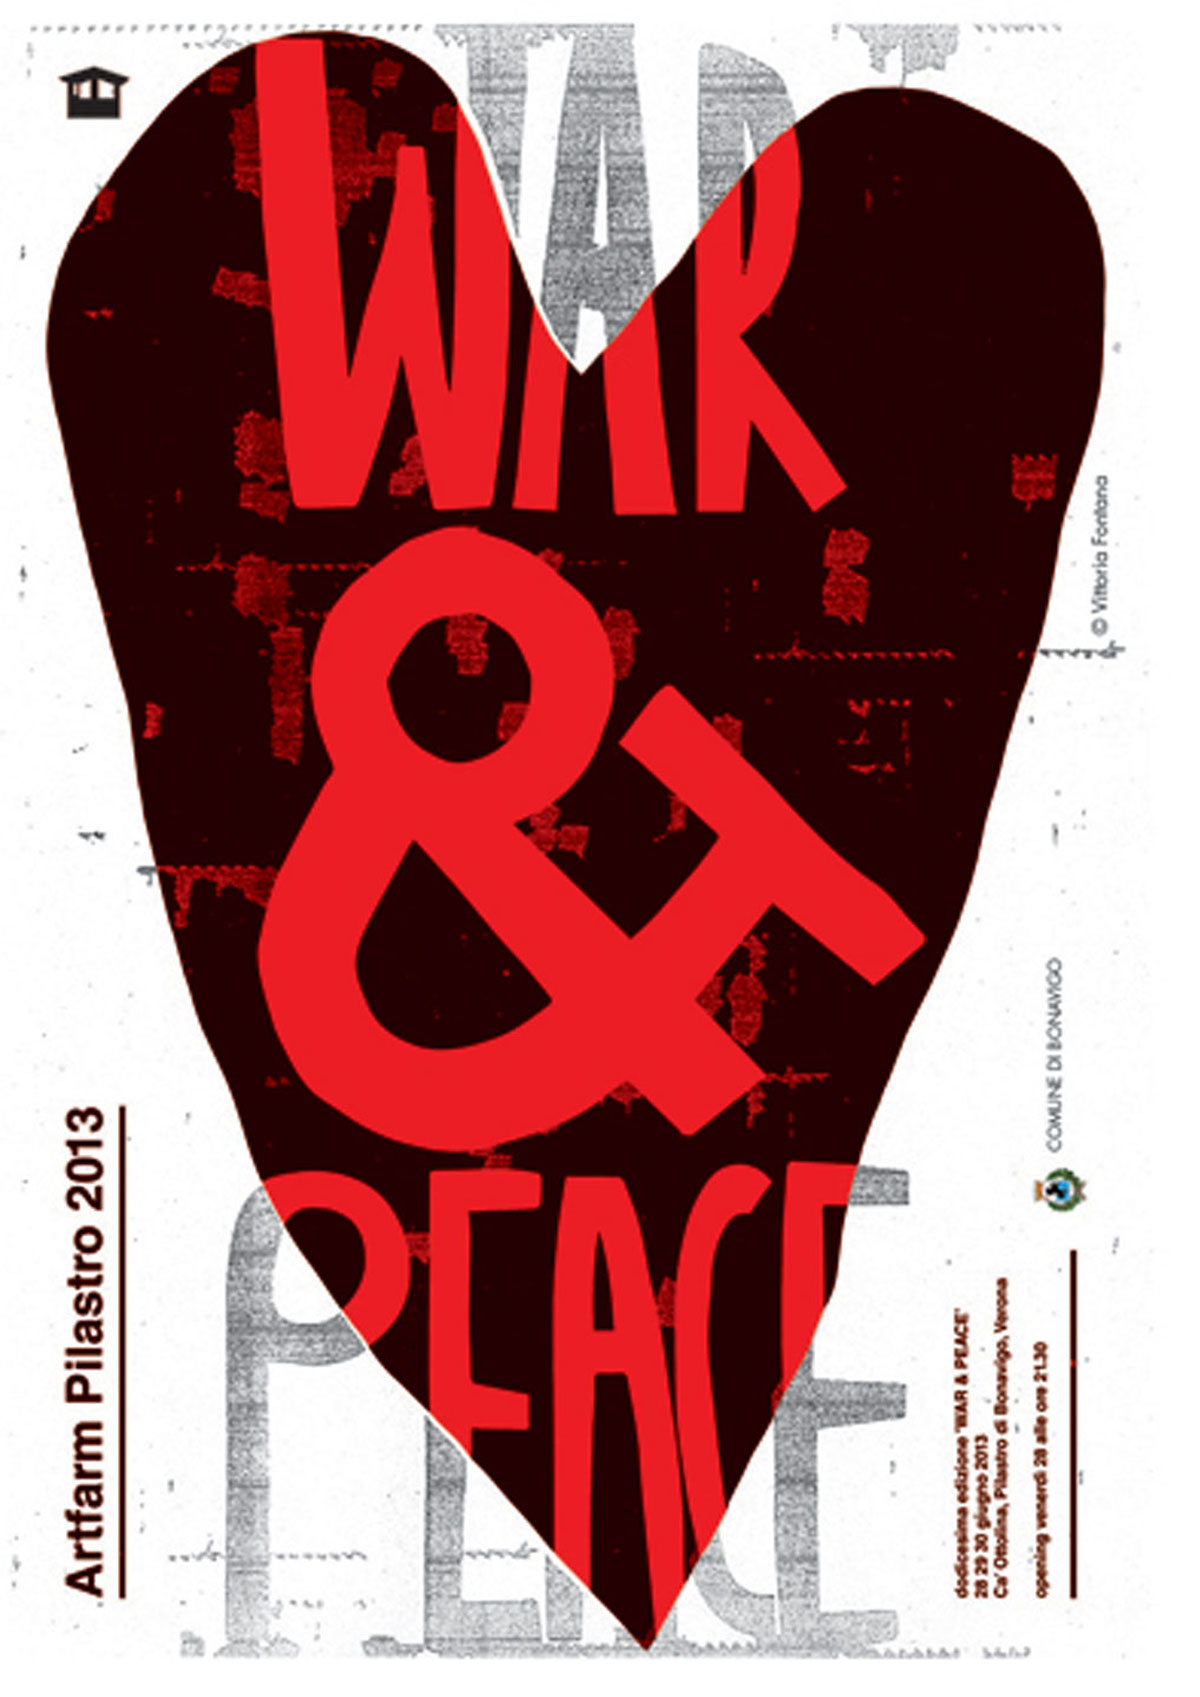 War and Peace - Art Farm -2013